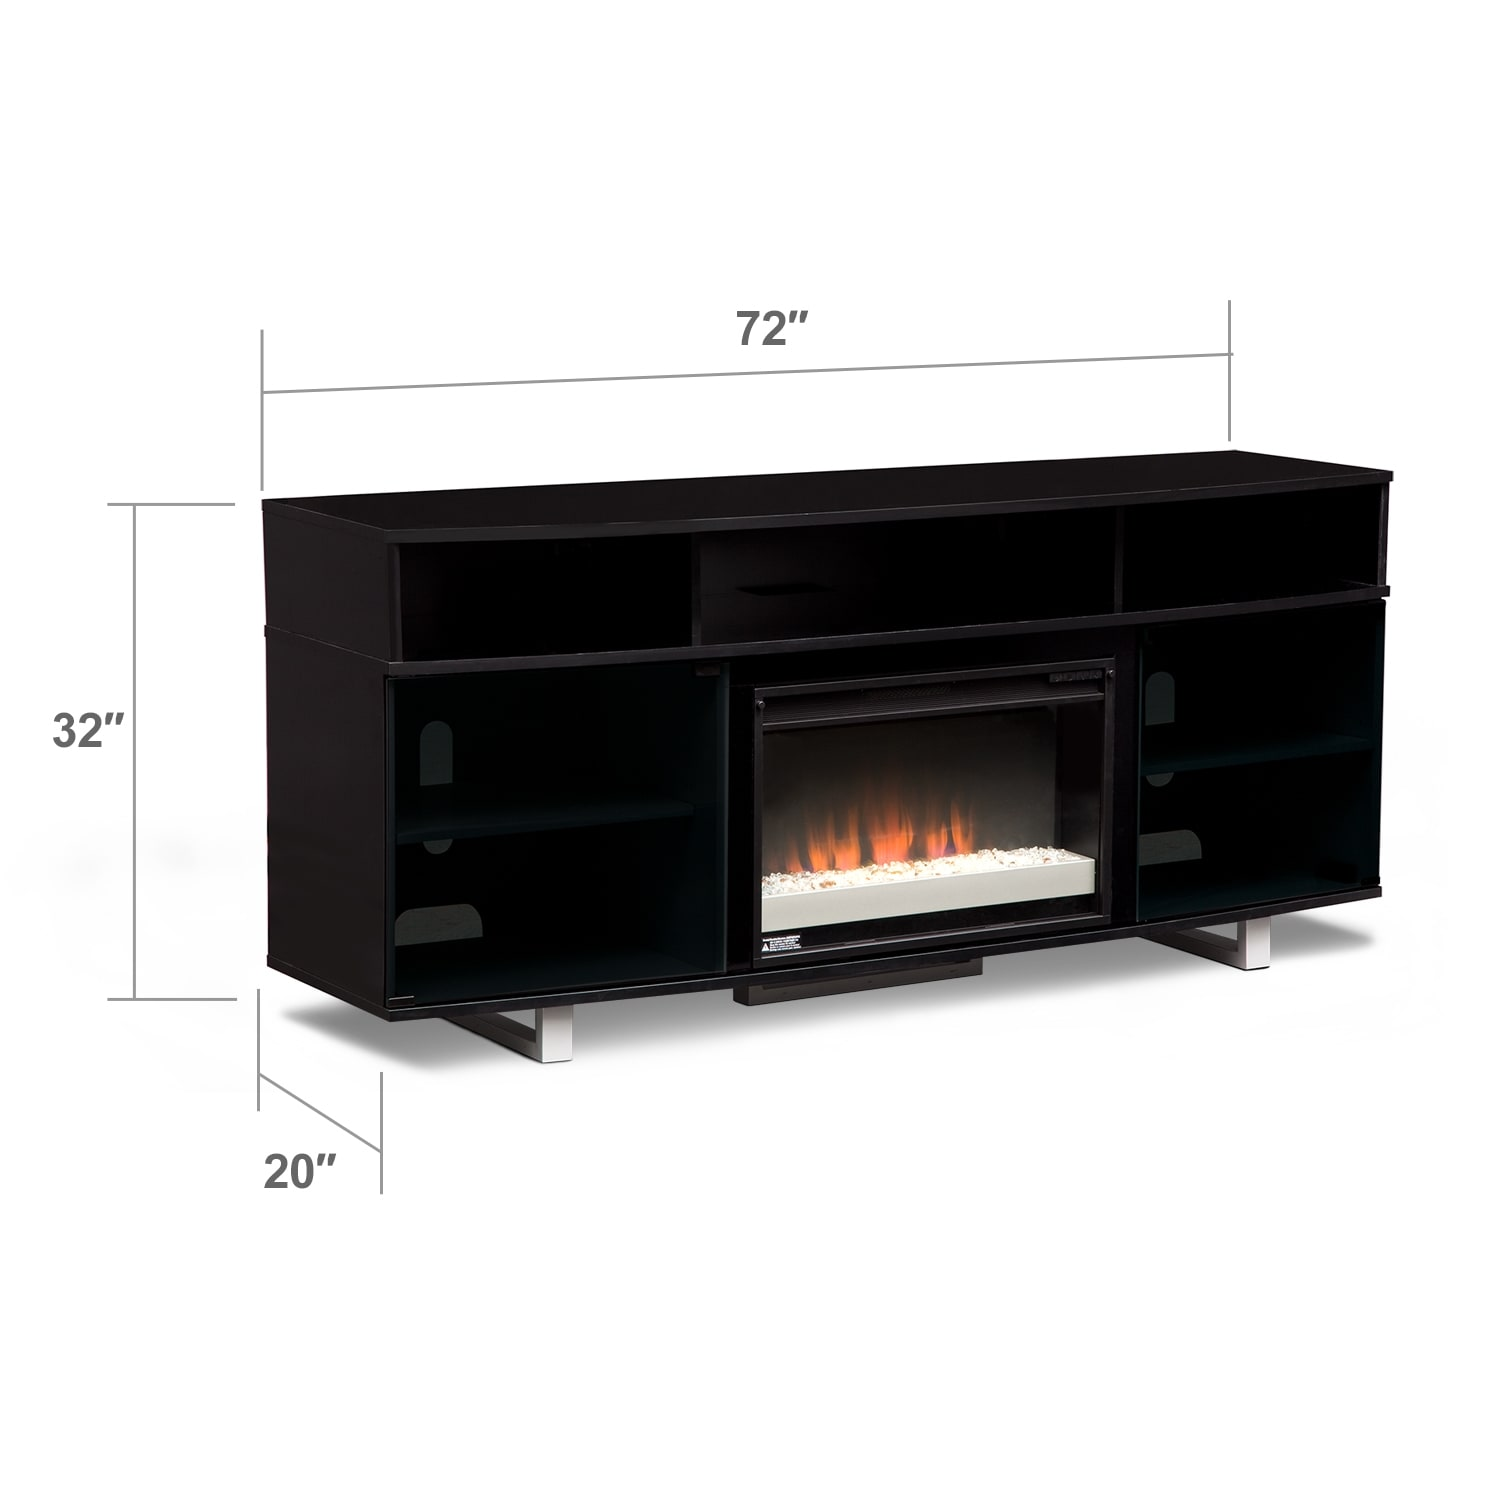 pacer 72 contemporary fireplace tv stand black value city furniture. Black Bedroom Furniture Sets. Home Design Ideas